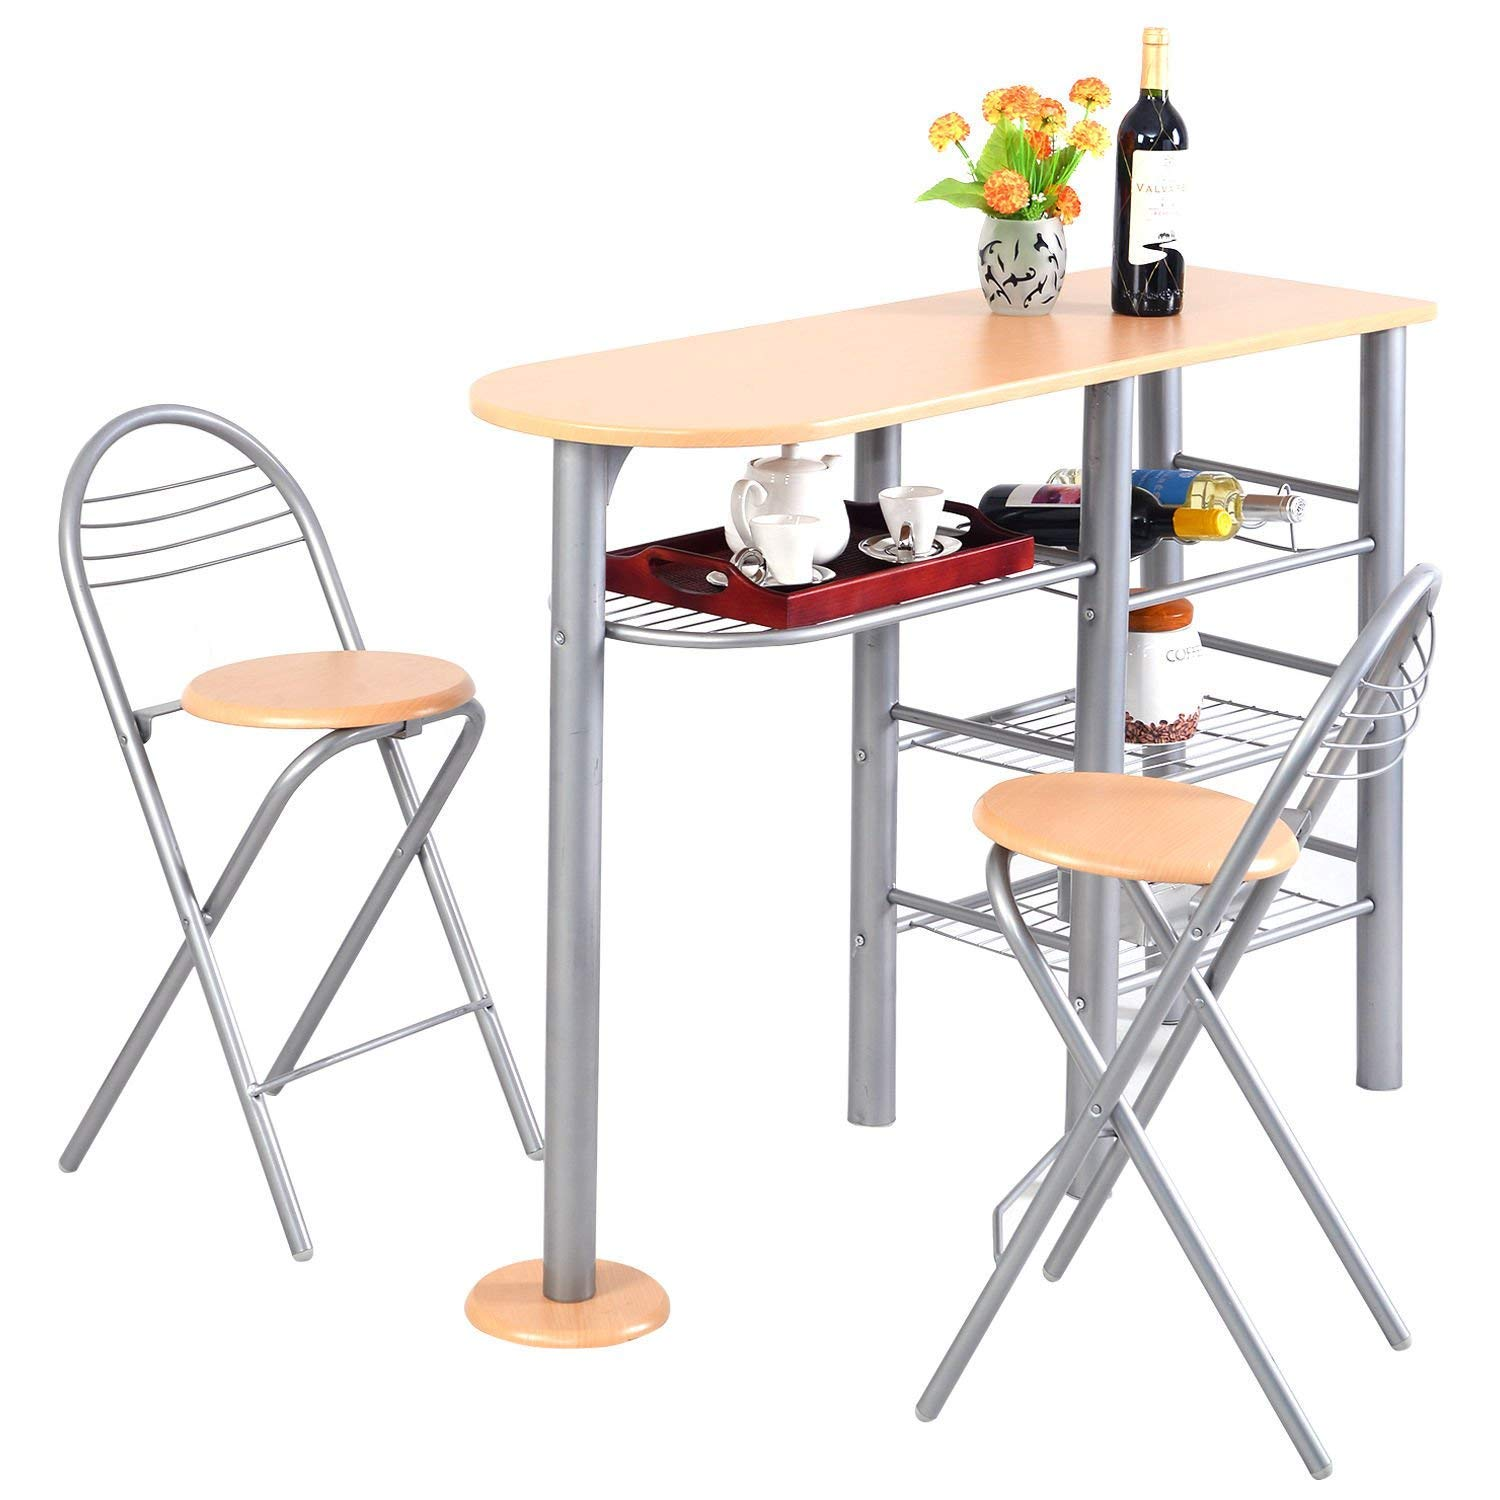 Giantex 3 Piece Pub Dining Set, 3-Tier Metal Storage Shelves with Wine Rack Design, 2 Folding Chairs for Easy Storage, Counter Height Dining Table Set for Kitchen, Dining Room, Living Room